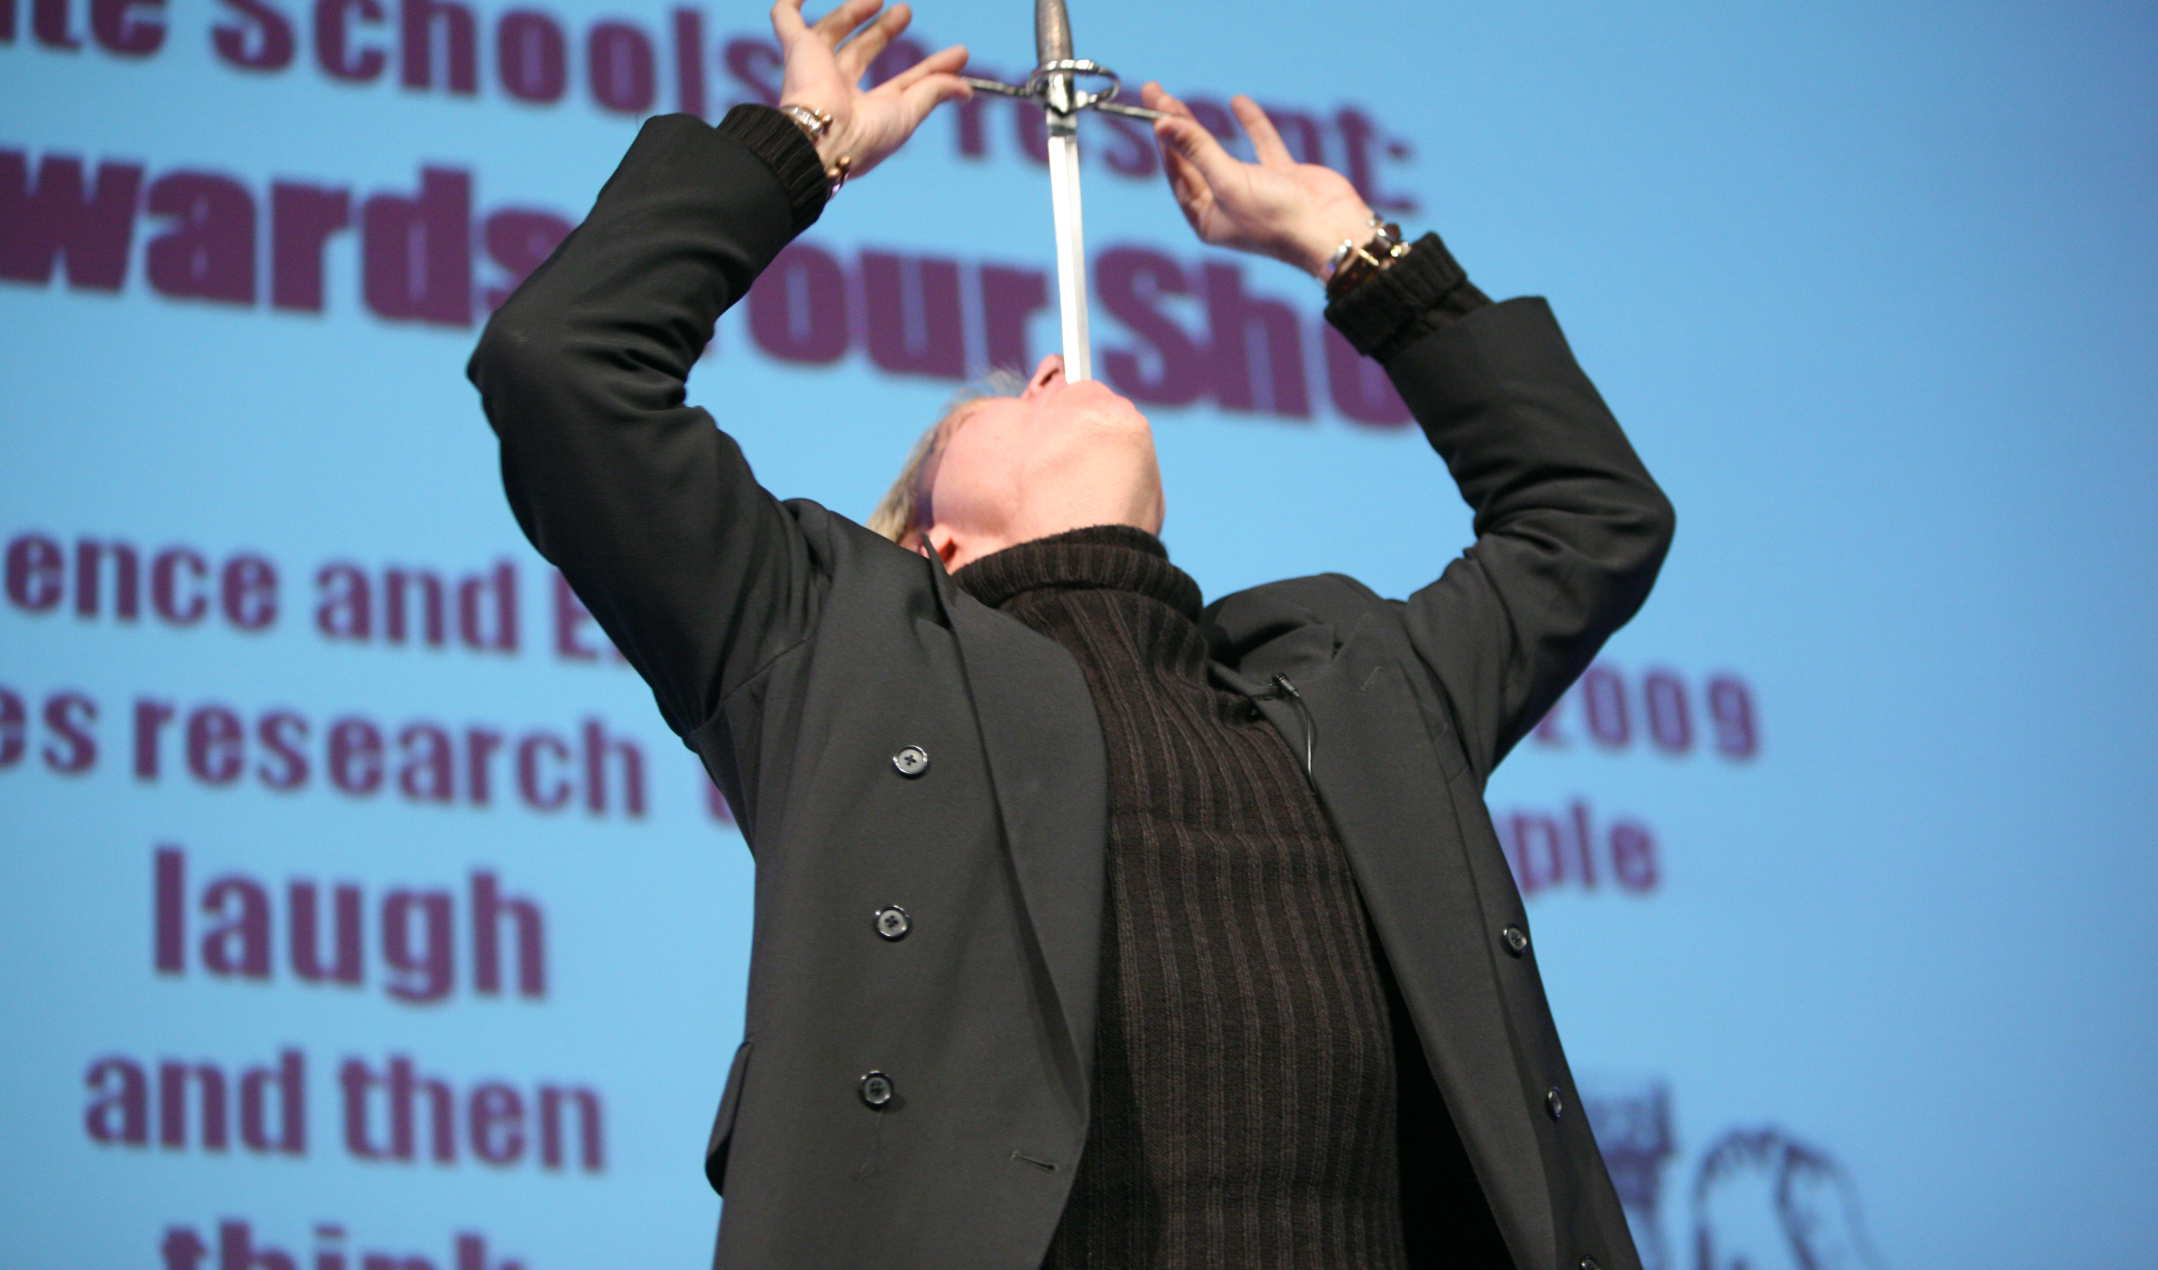 A man swallowing a sword at the Ig Nobel Awards show